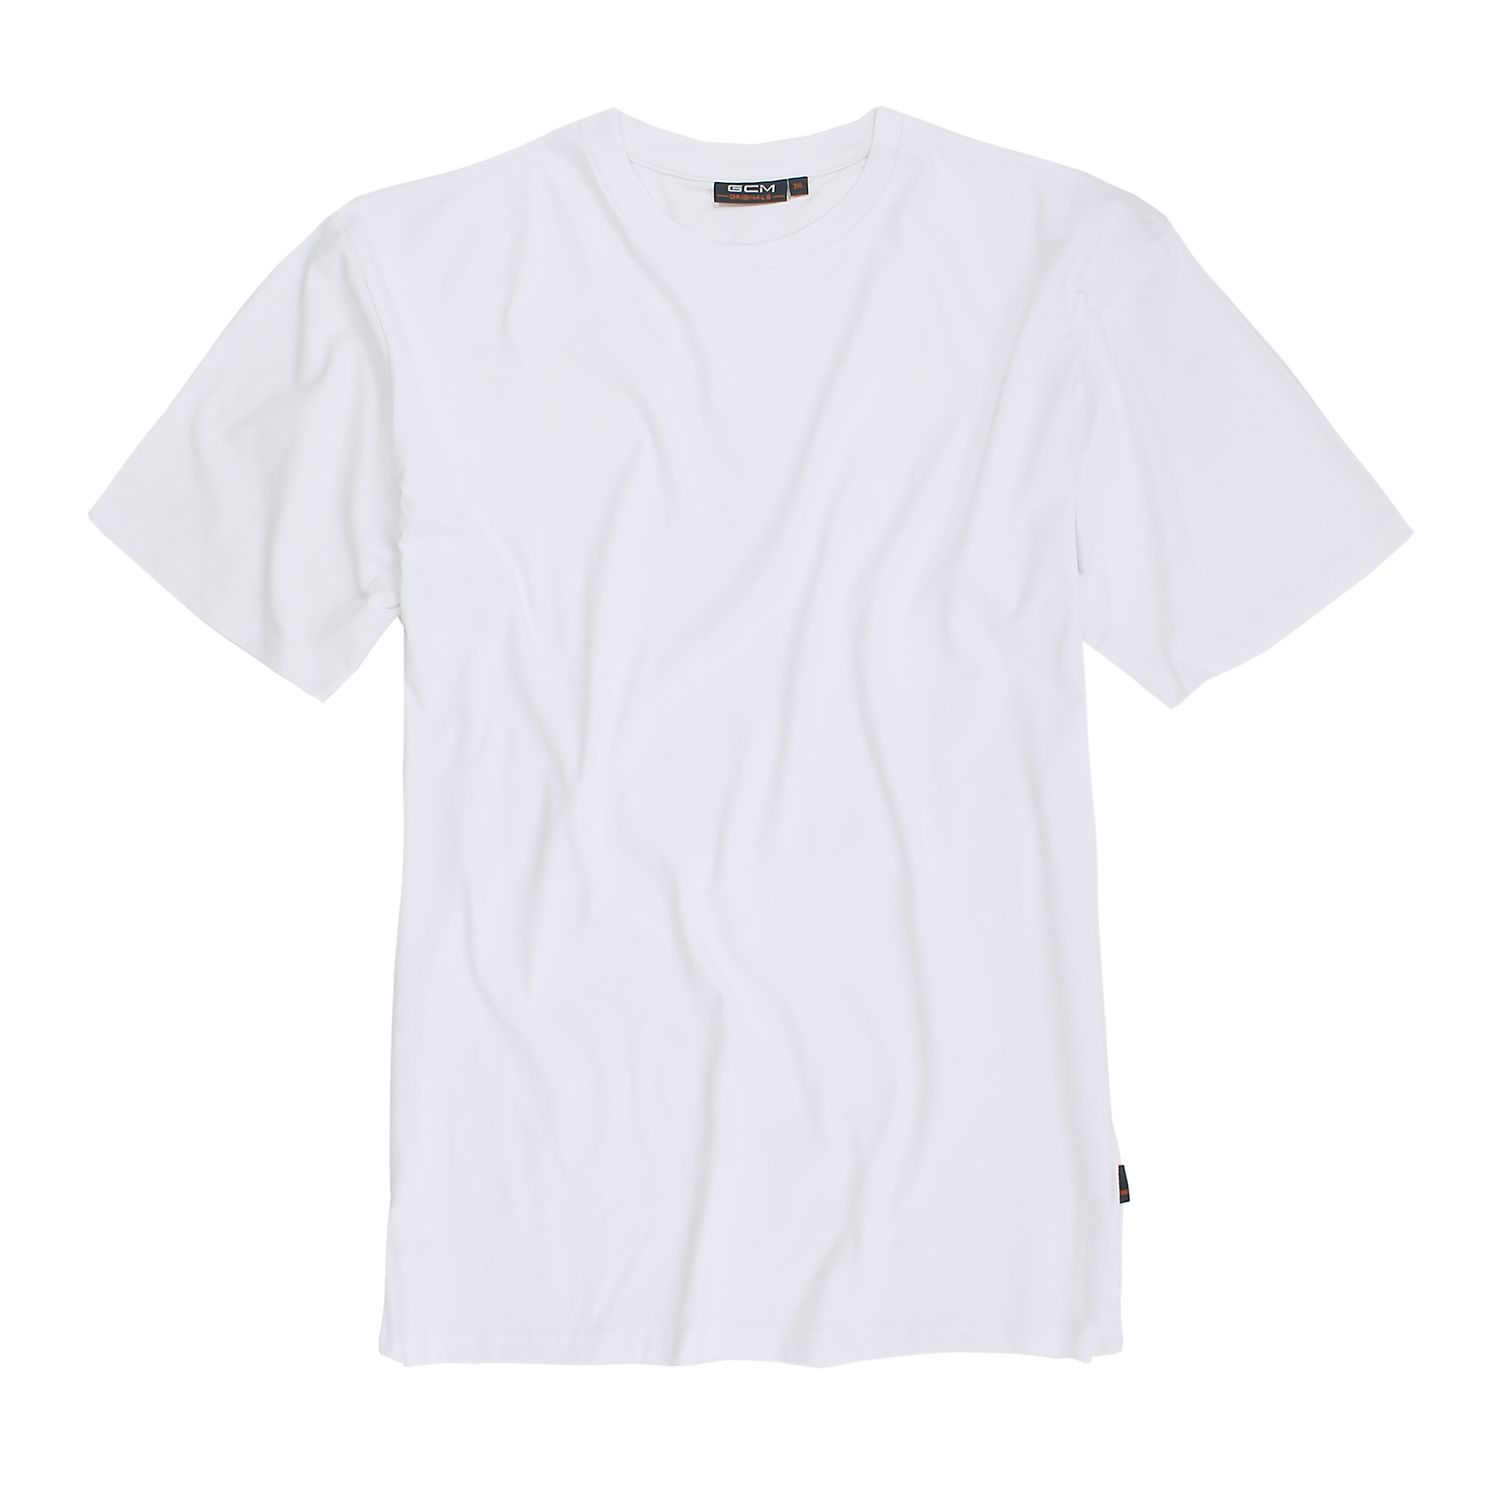 Detail Image to T-shirt in white by GCM Originals in oversizes up to 6XL